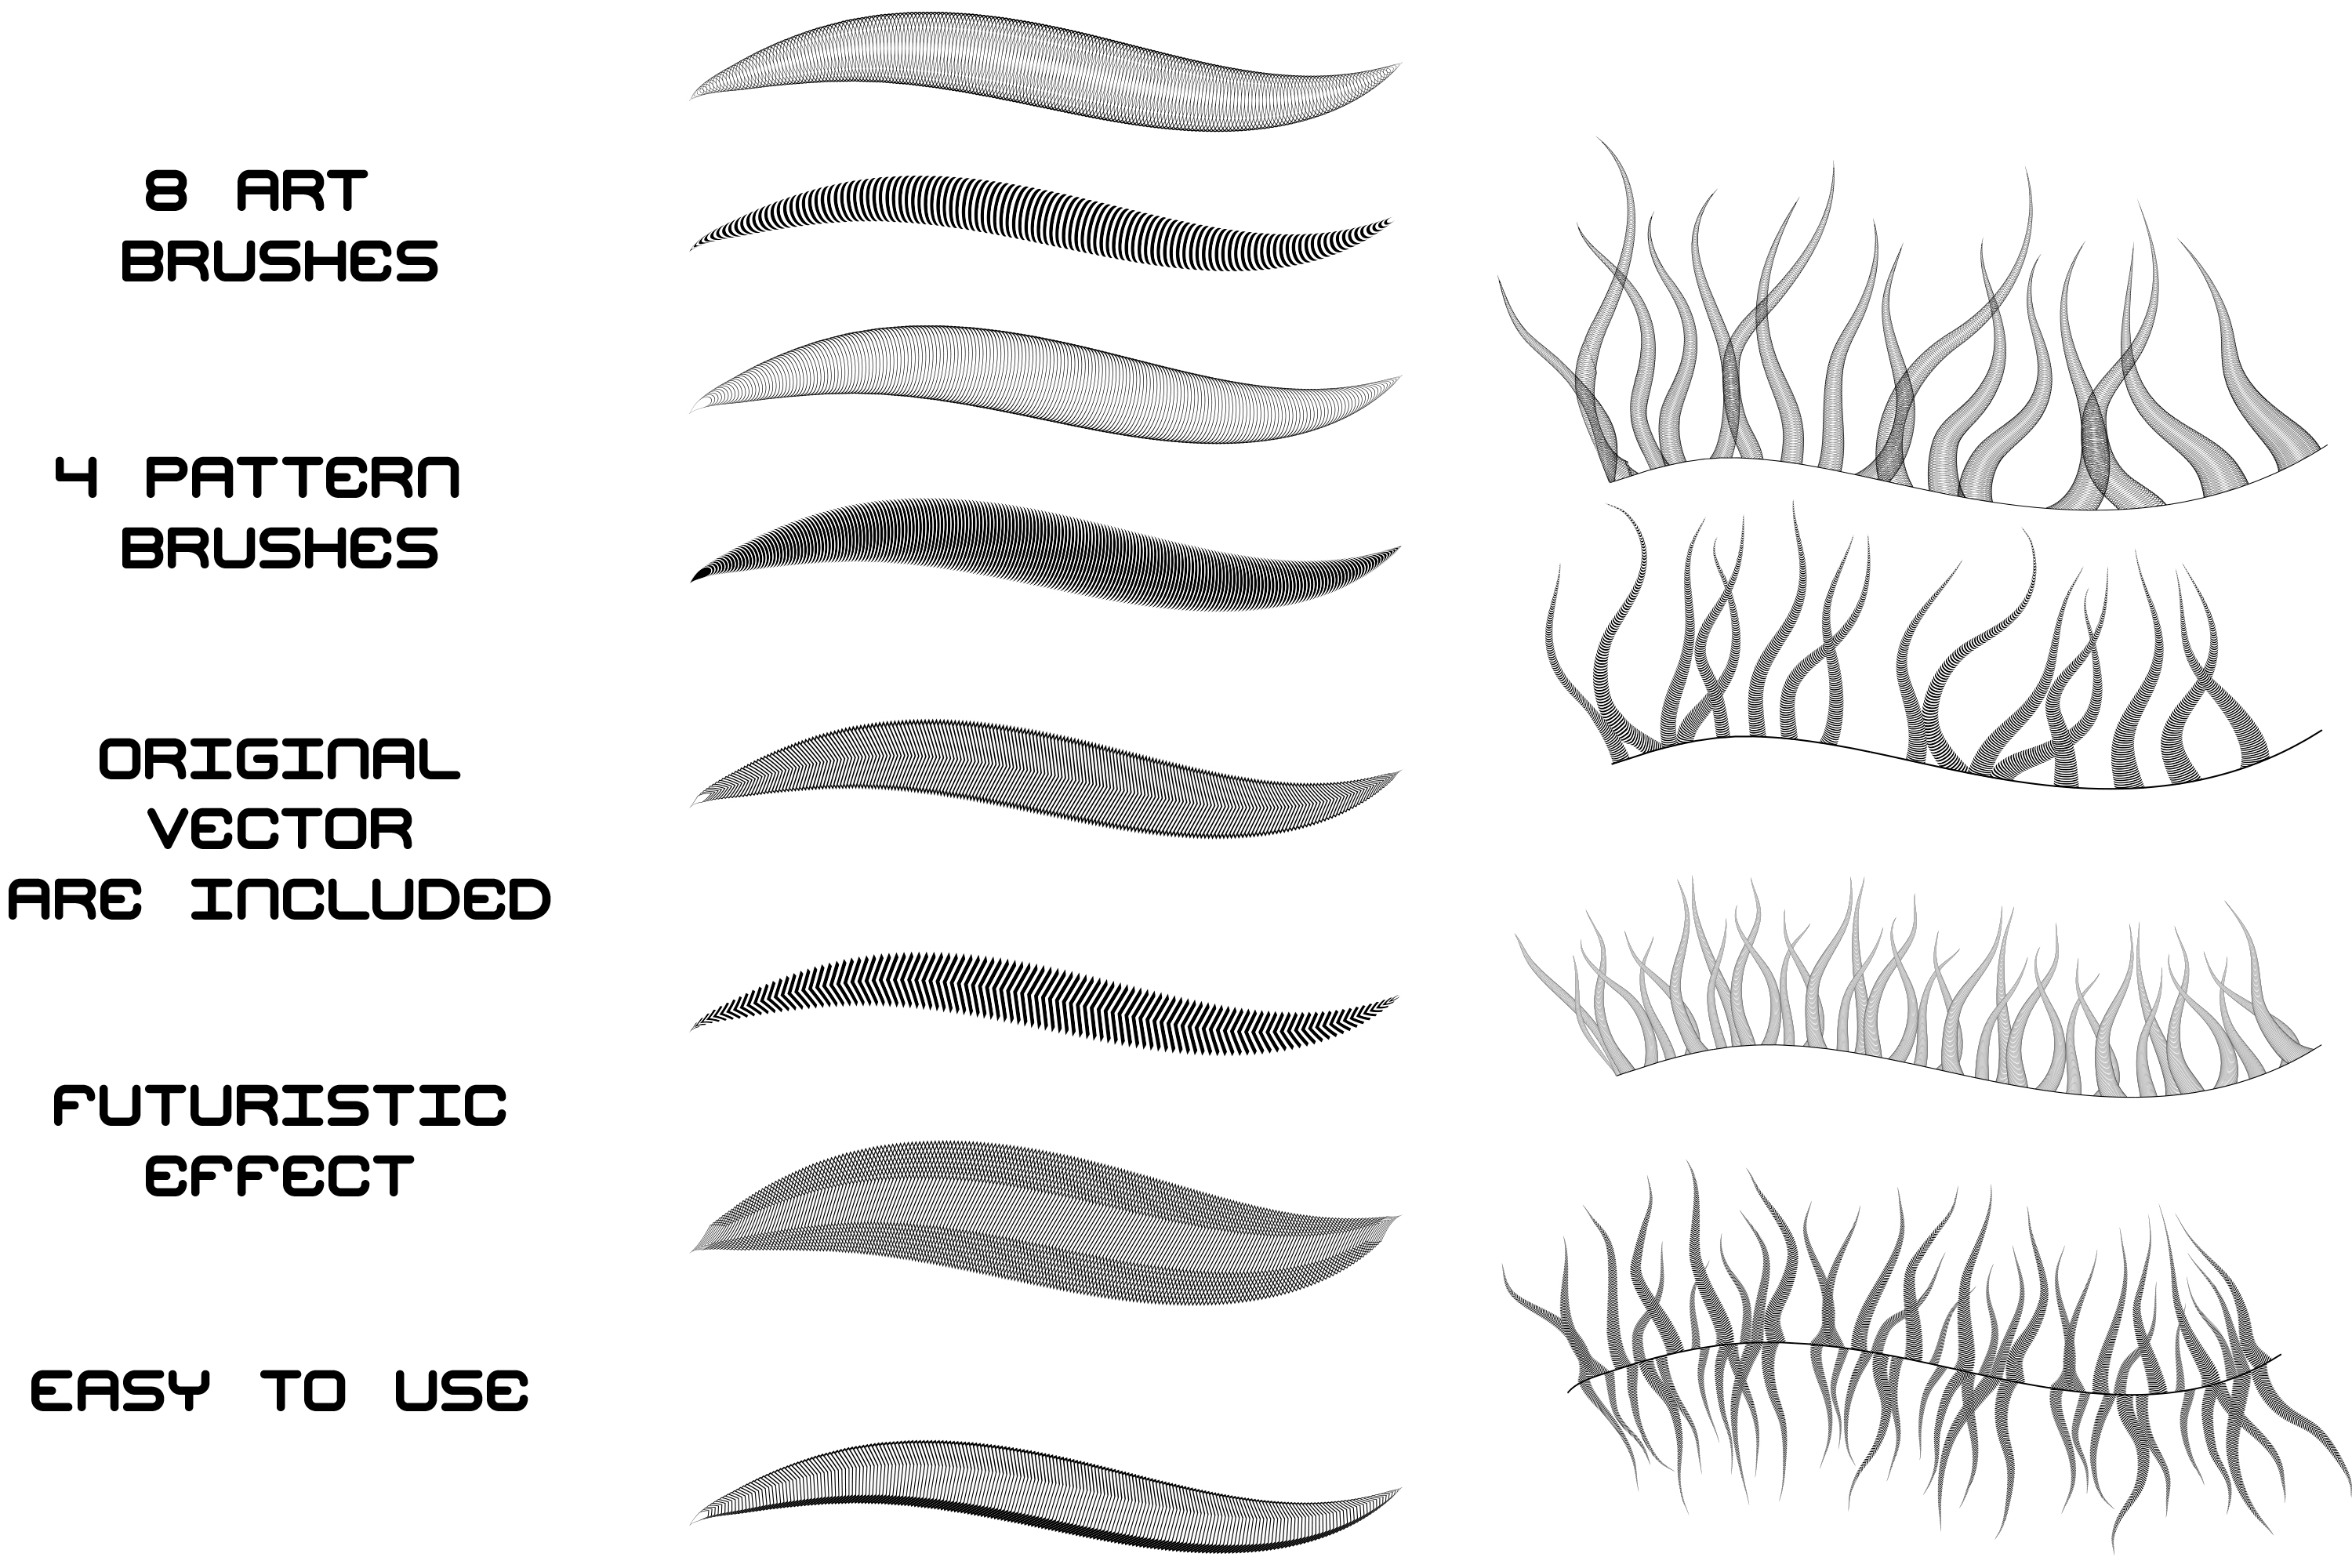 Tentacles - Futuristic Adobe Illustrator Brushes Pack example image 2